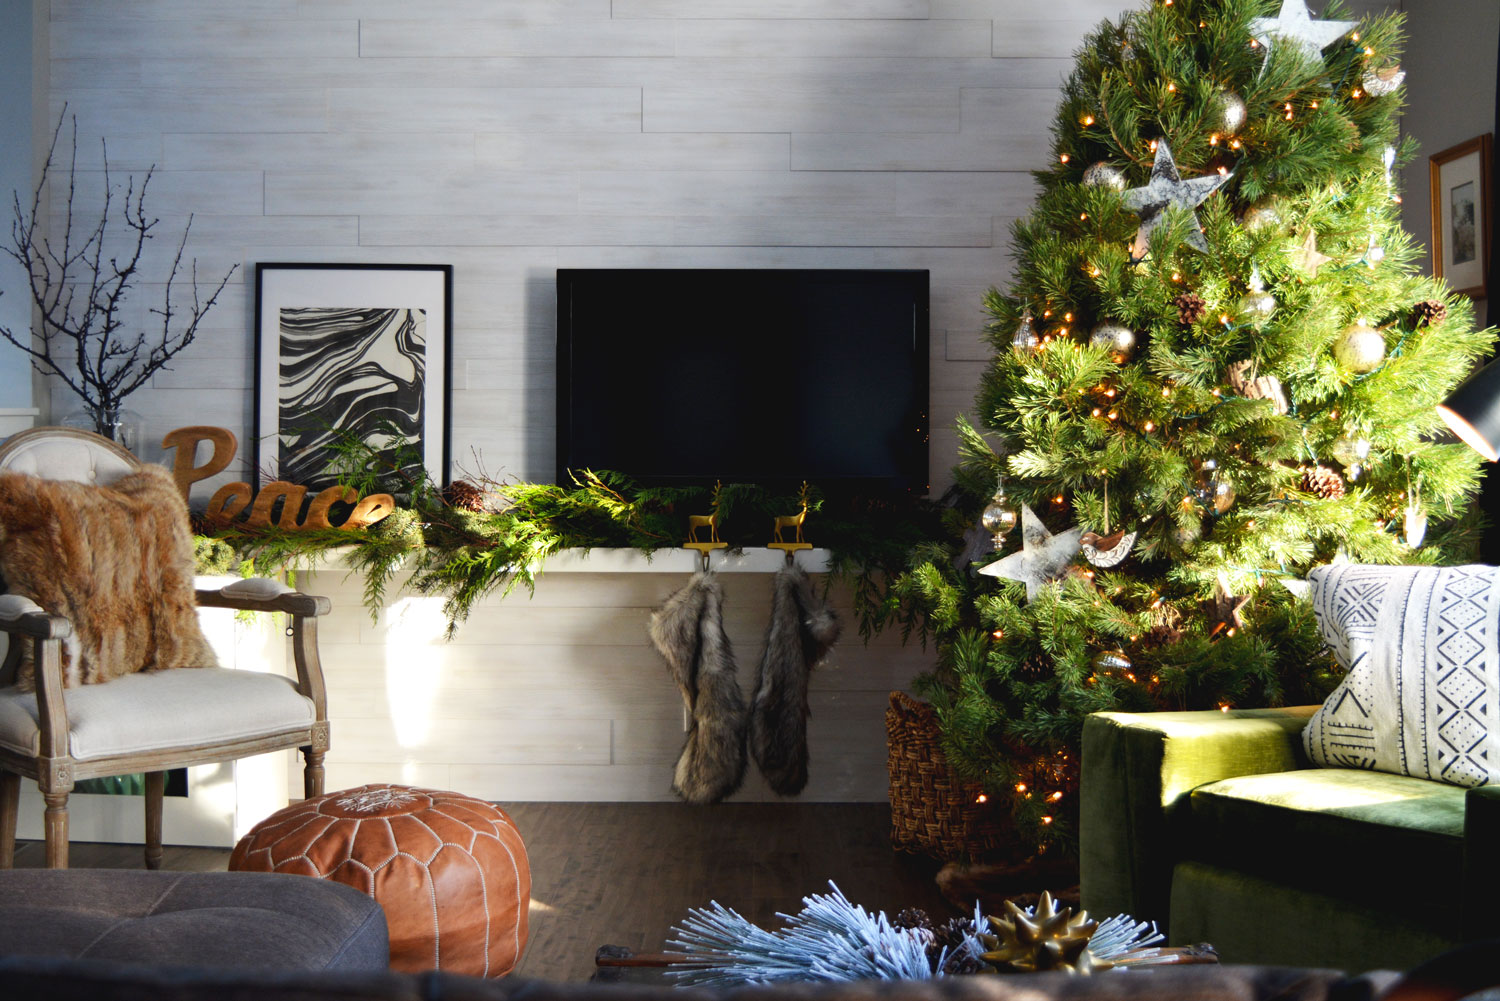 Who needs a fireplace?! Stockings can be hung down a stair railing or along a floating shelf!